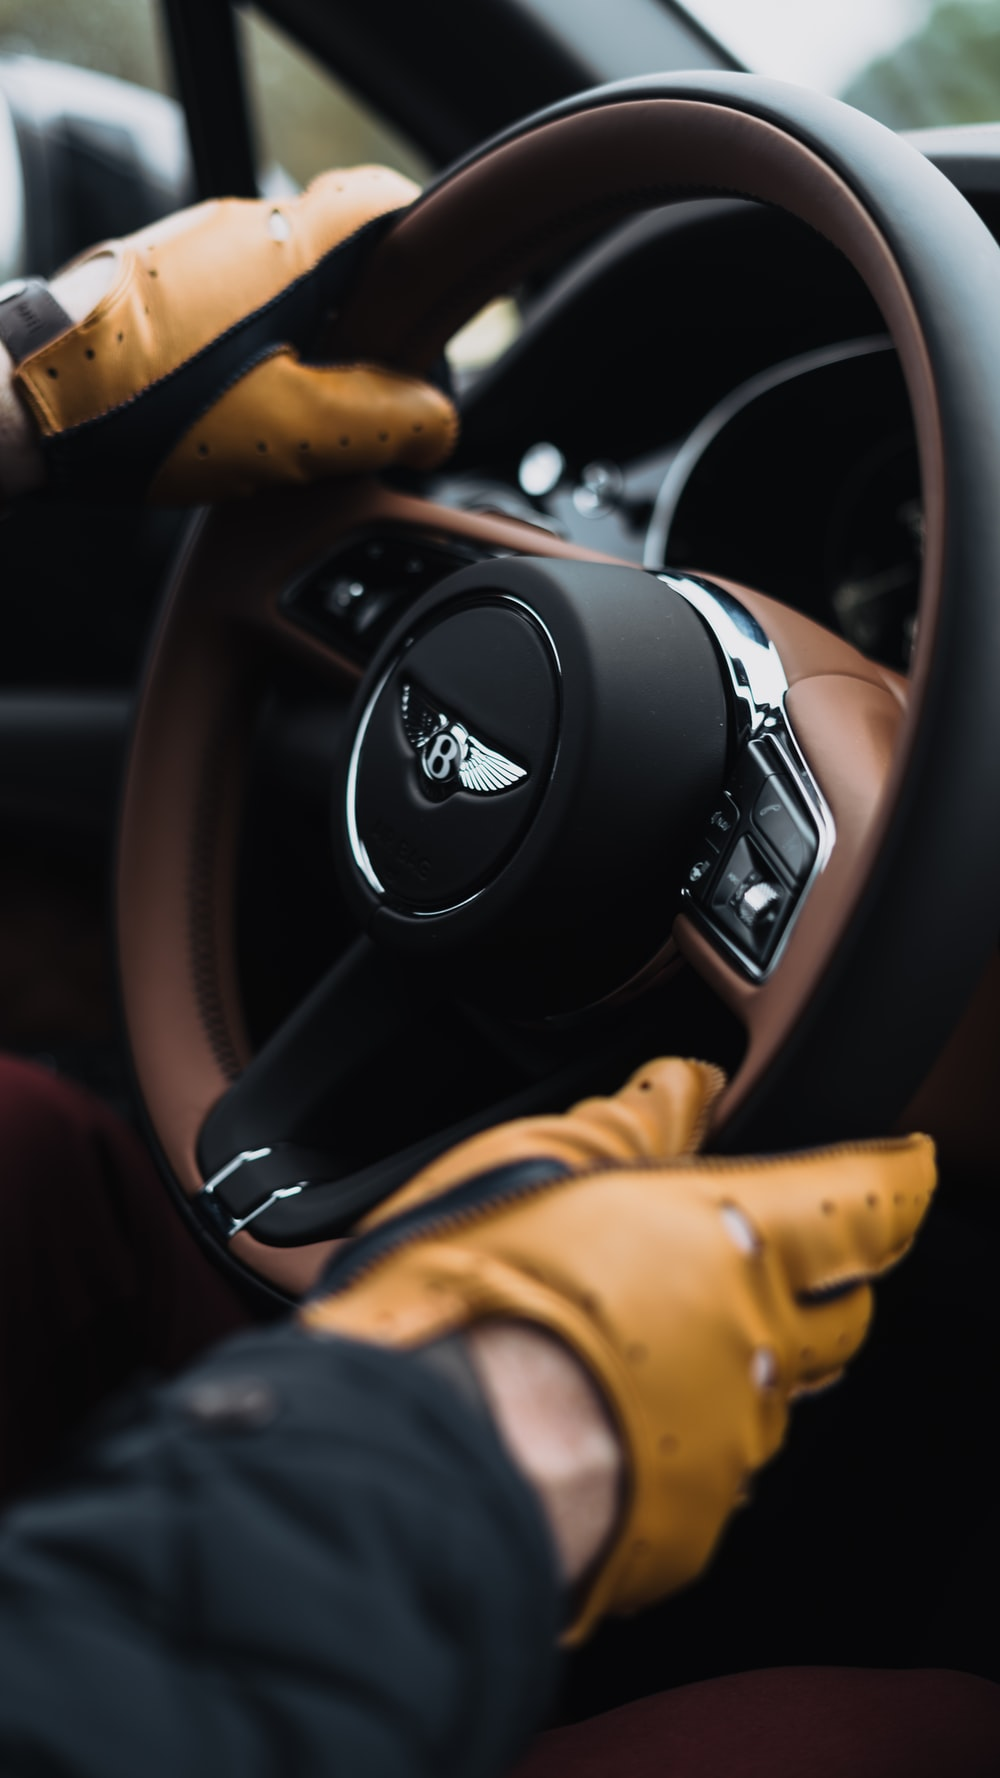 person holding black and silver nissan steering wheel